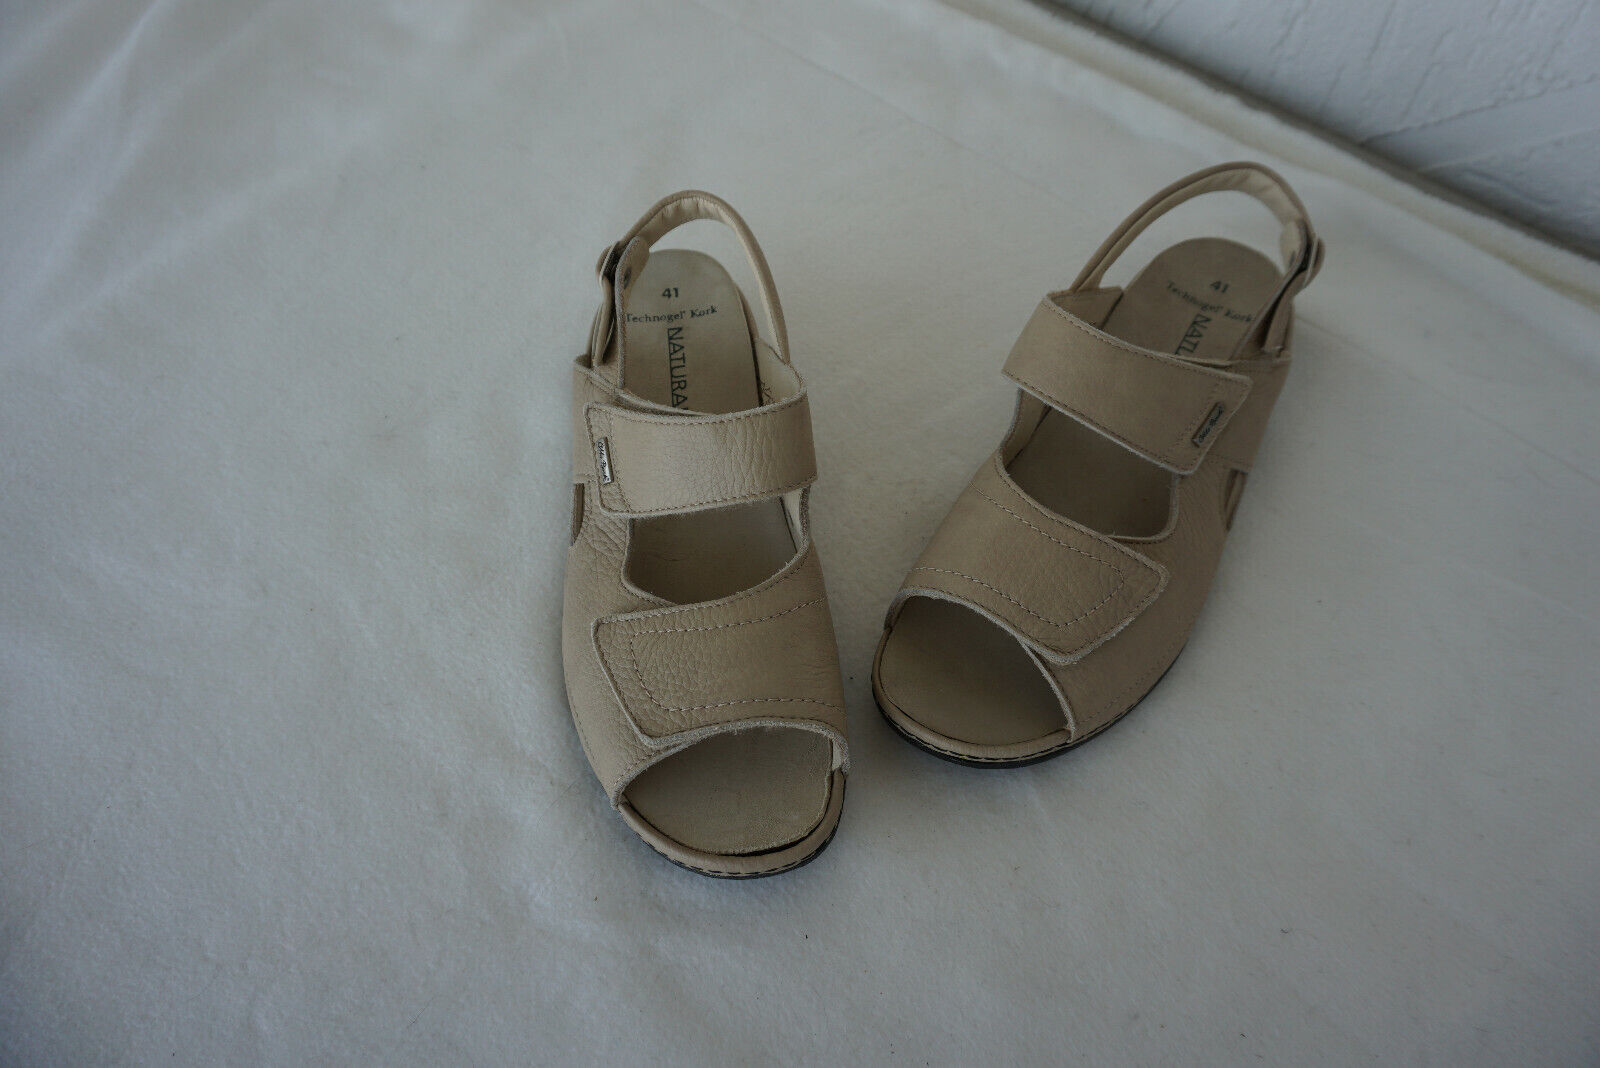 Orthopedic Otto Bock Womens Summer Sandals shoes Velcro Size 41 Beige Leather NEW